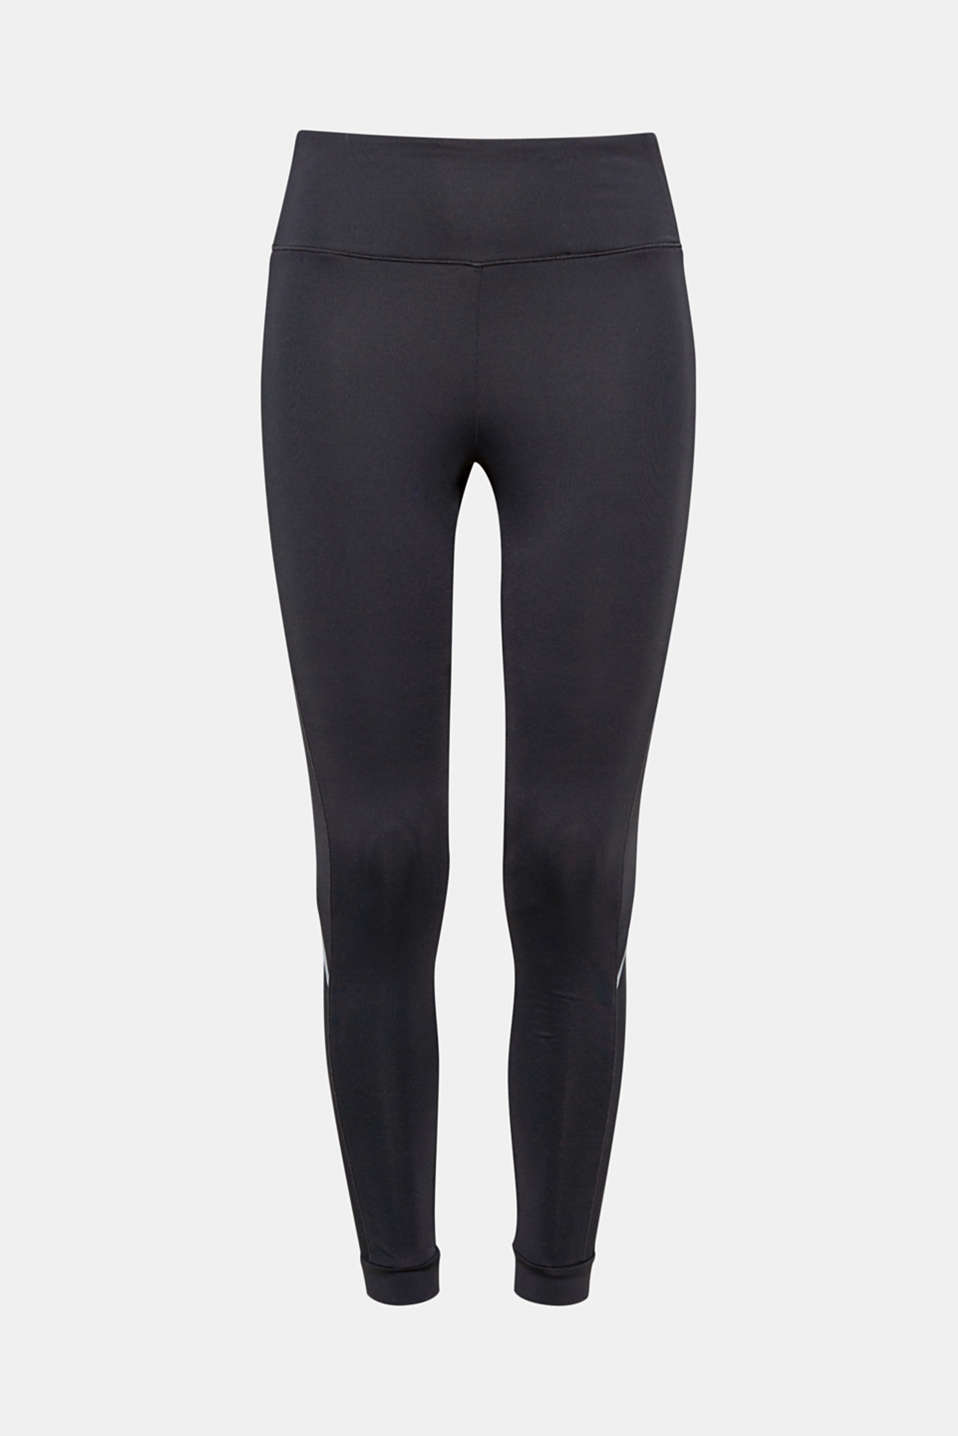 Be active: with these close-fitting stretch jersey trousers with side mesh inserts and E-DRY technology!